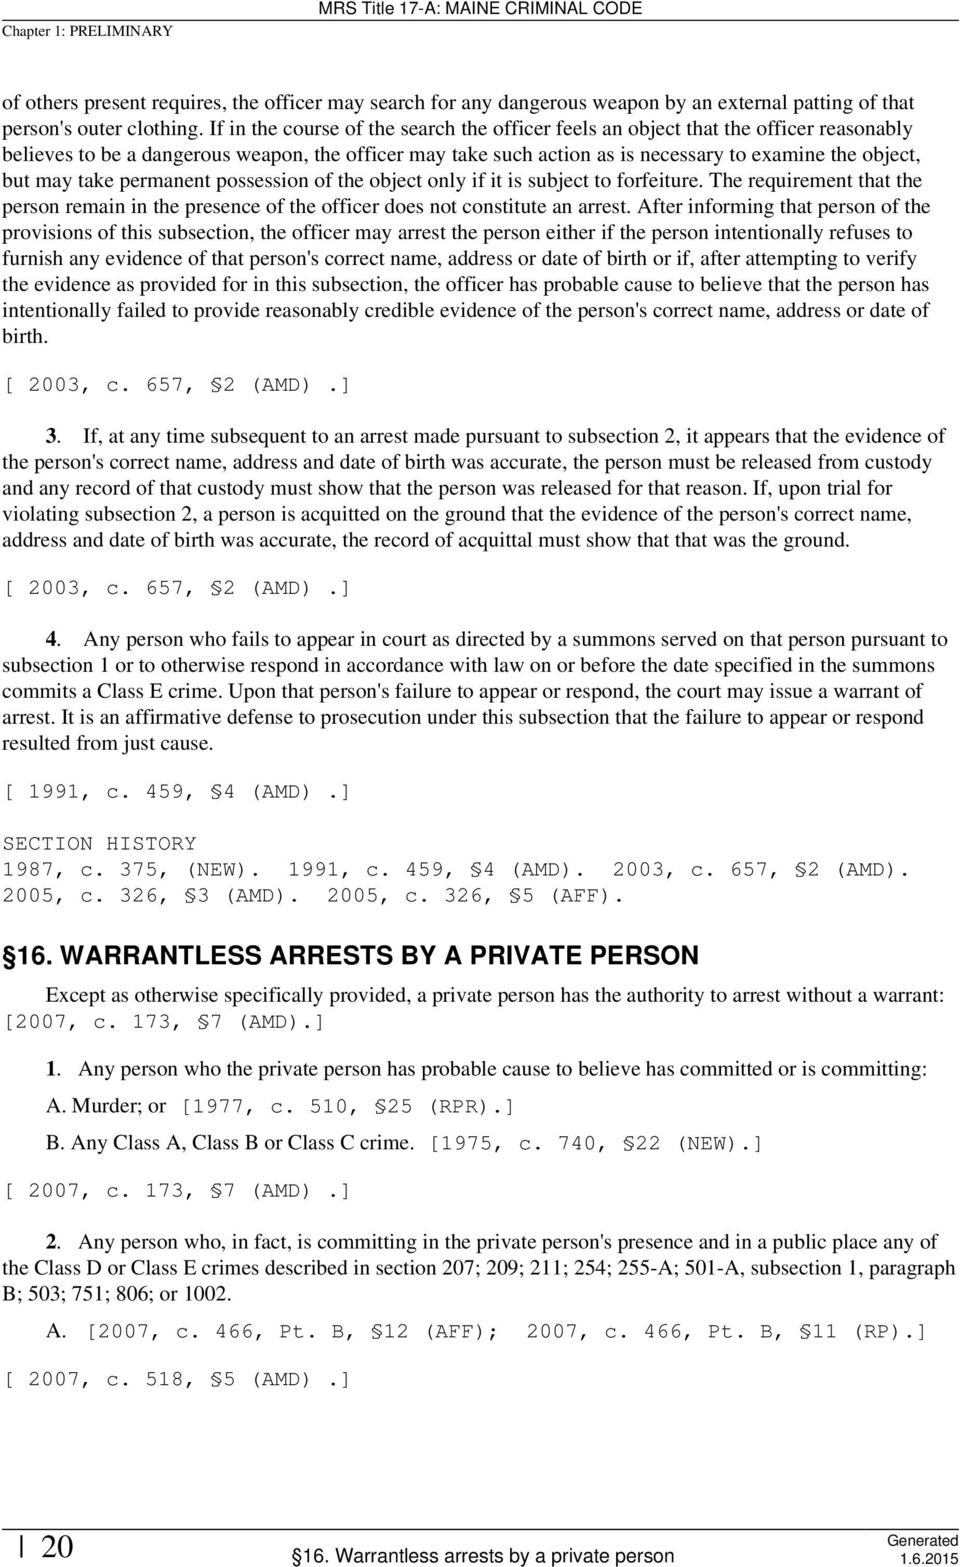 may take permanent possession of the object only if it is subject to forfeiture. The requirement that the person remain in the presence of the officer does not constitute an arrest.